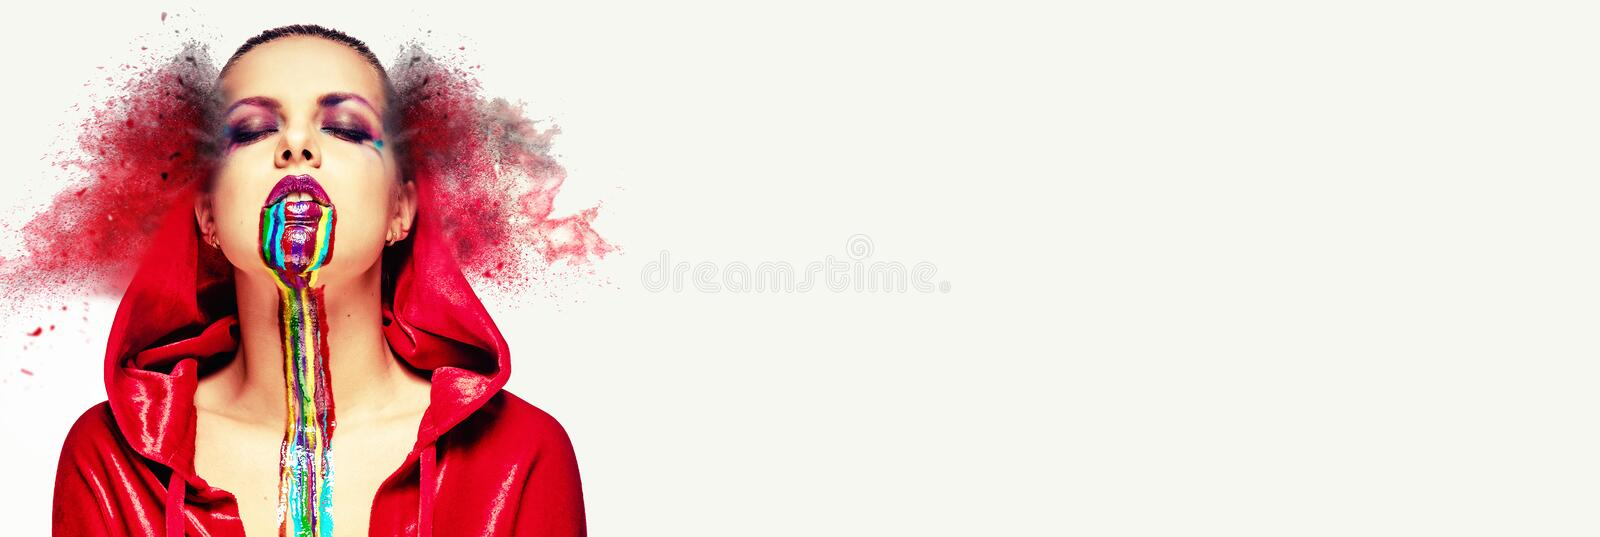 Sexy woman wear red cloak creative bright face make-up body art paint rainbow colors paint flowing down. Digitally generated image royalty free stock images